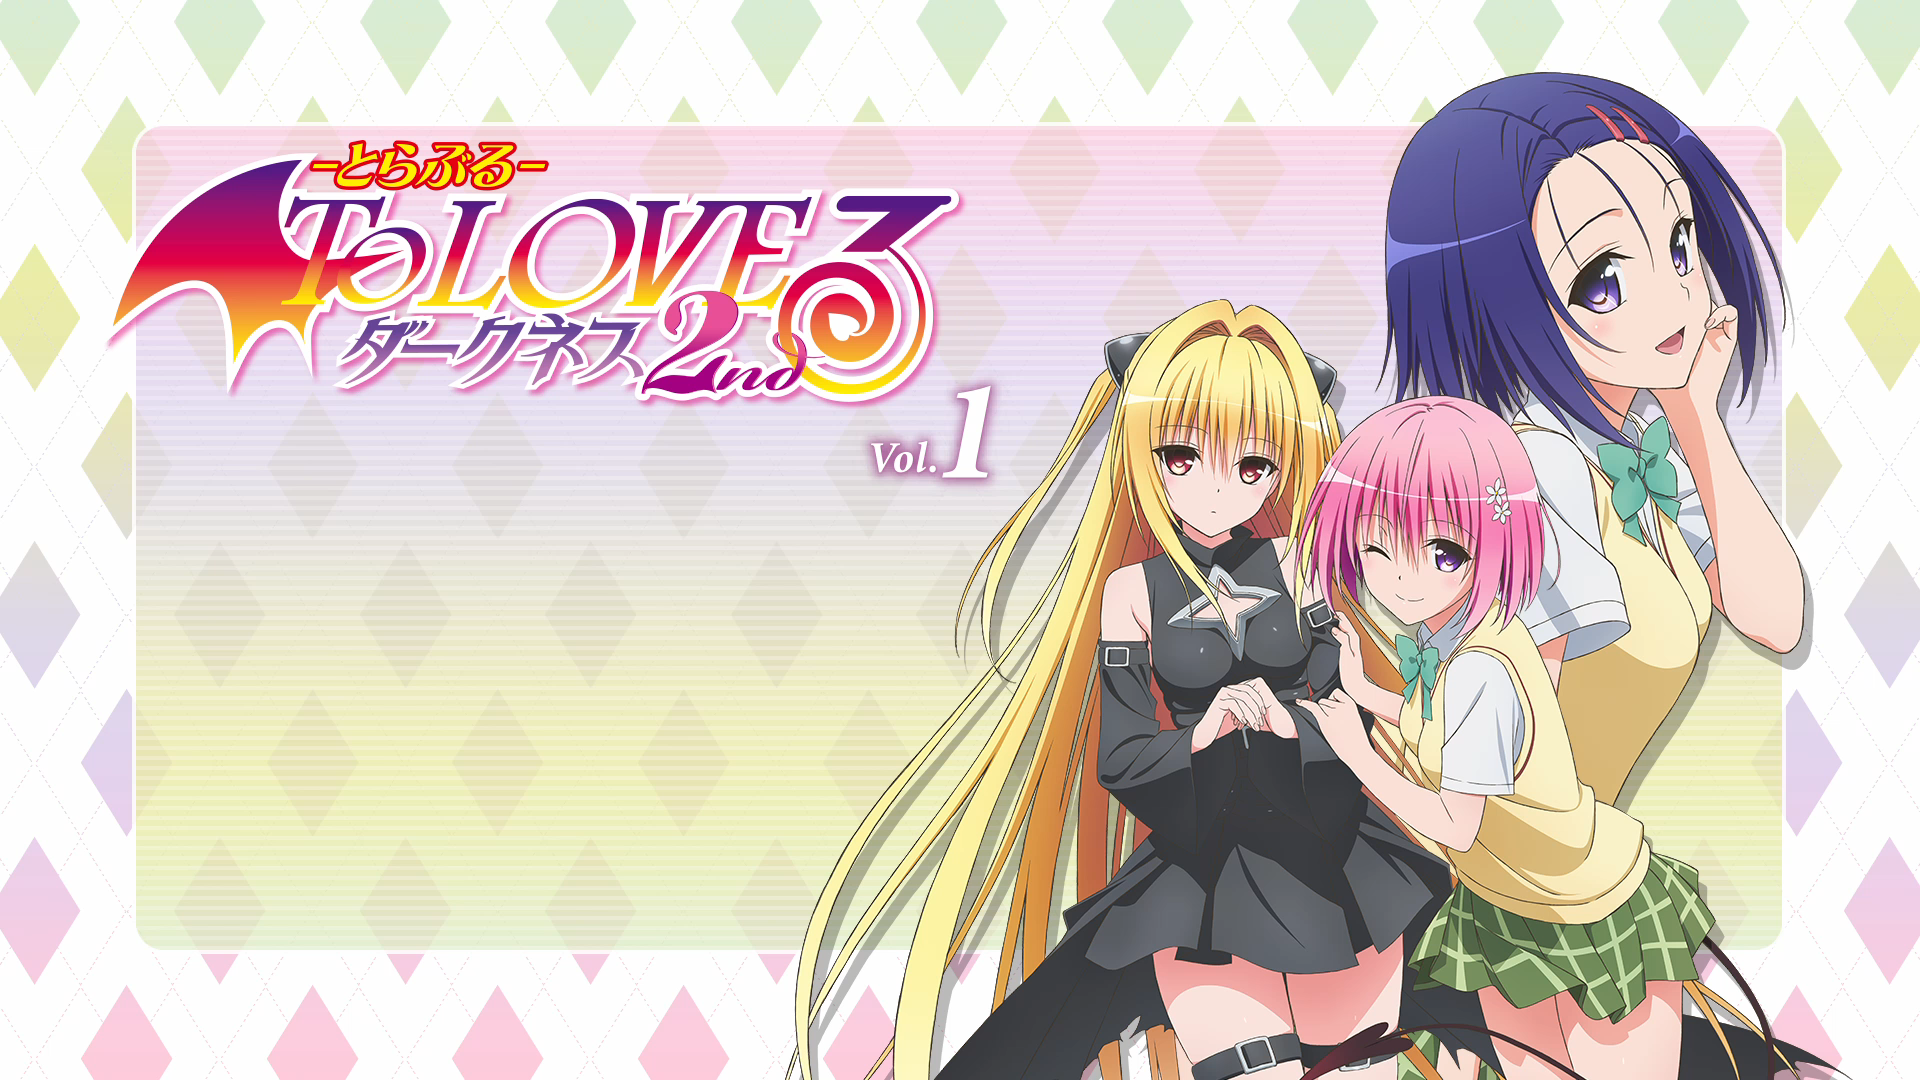 Wallpaper Hd To Love Ru Darkness : To Love-Ru: Darkness Full HD Wallpaper and Background Image 1920x1080 ID:696141